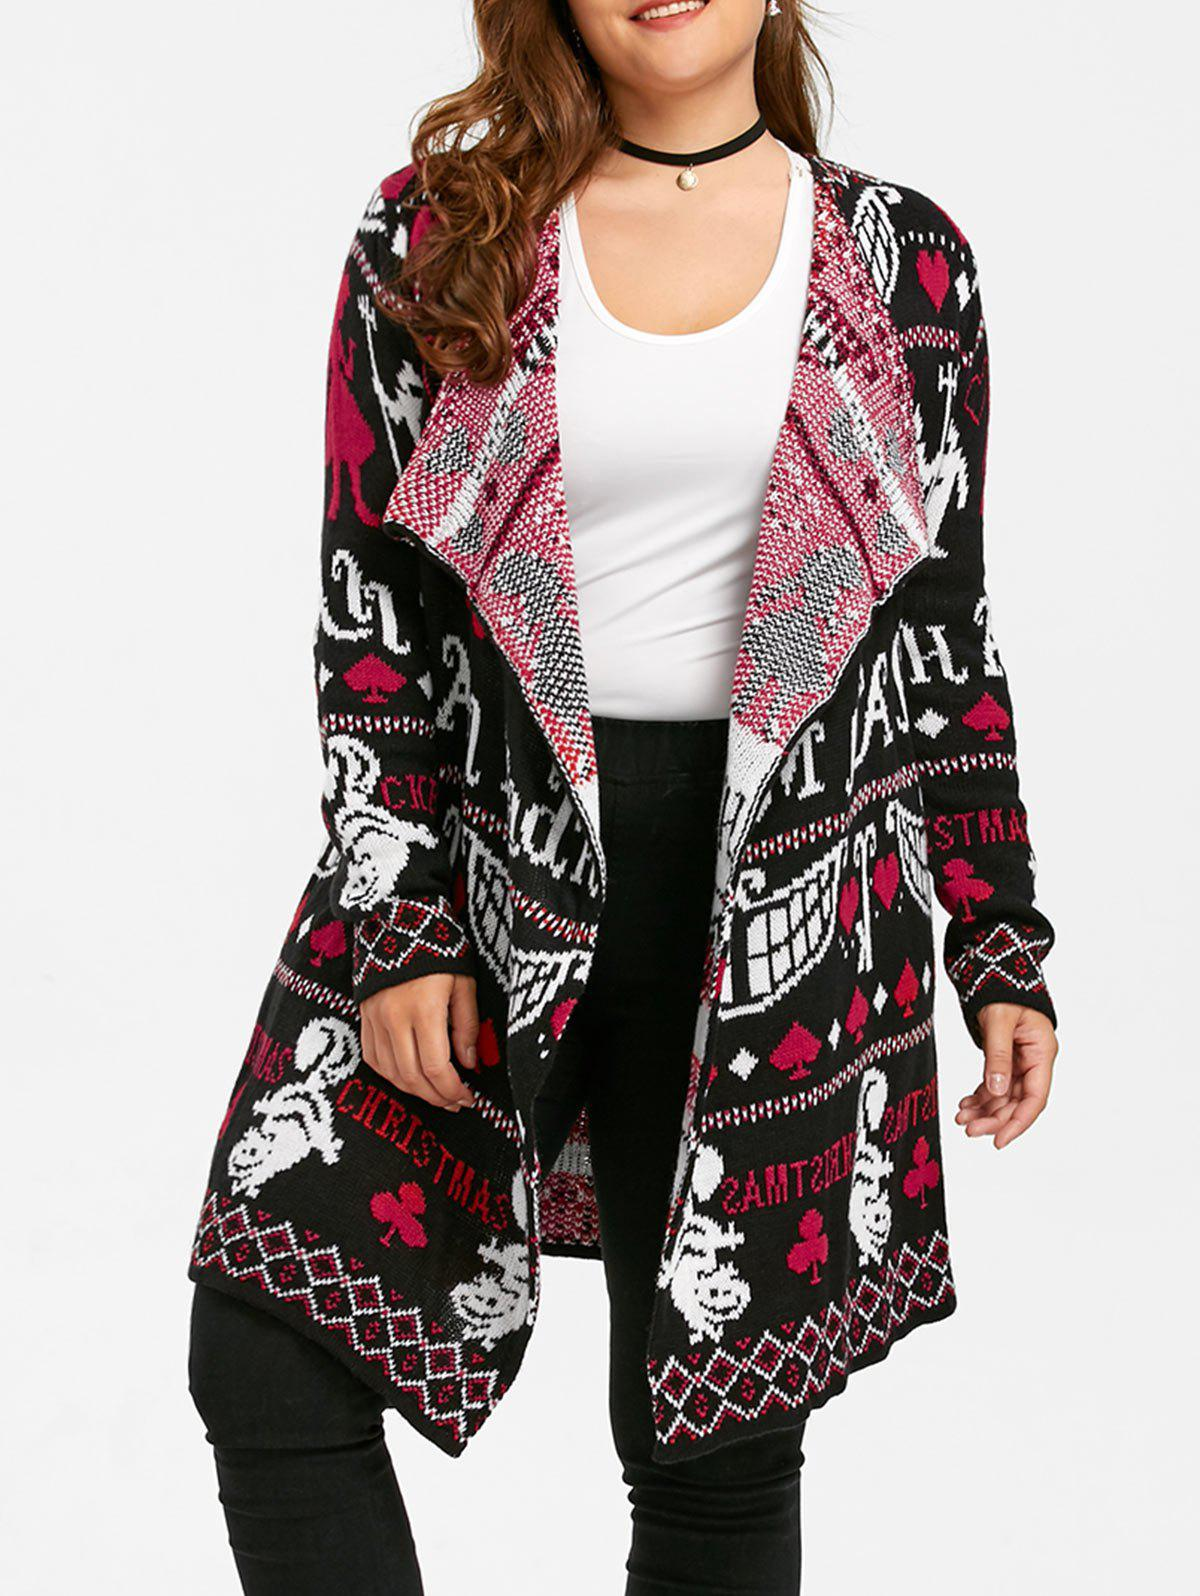 Chic Ugly Christmas Plus Size Sweater Drape Cardigan